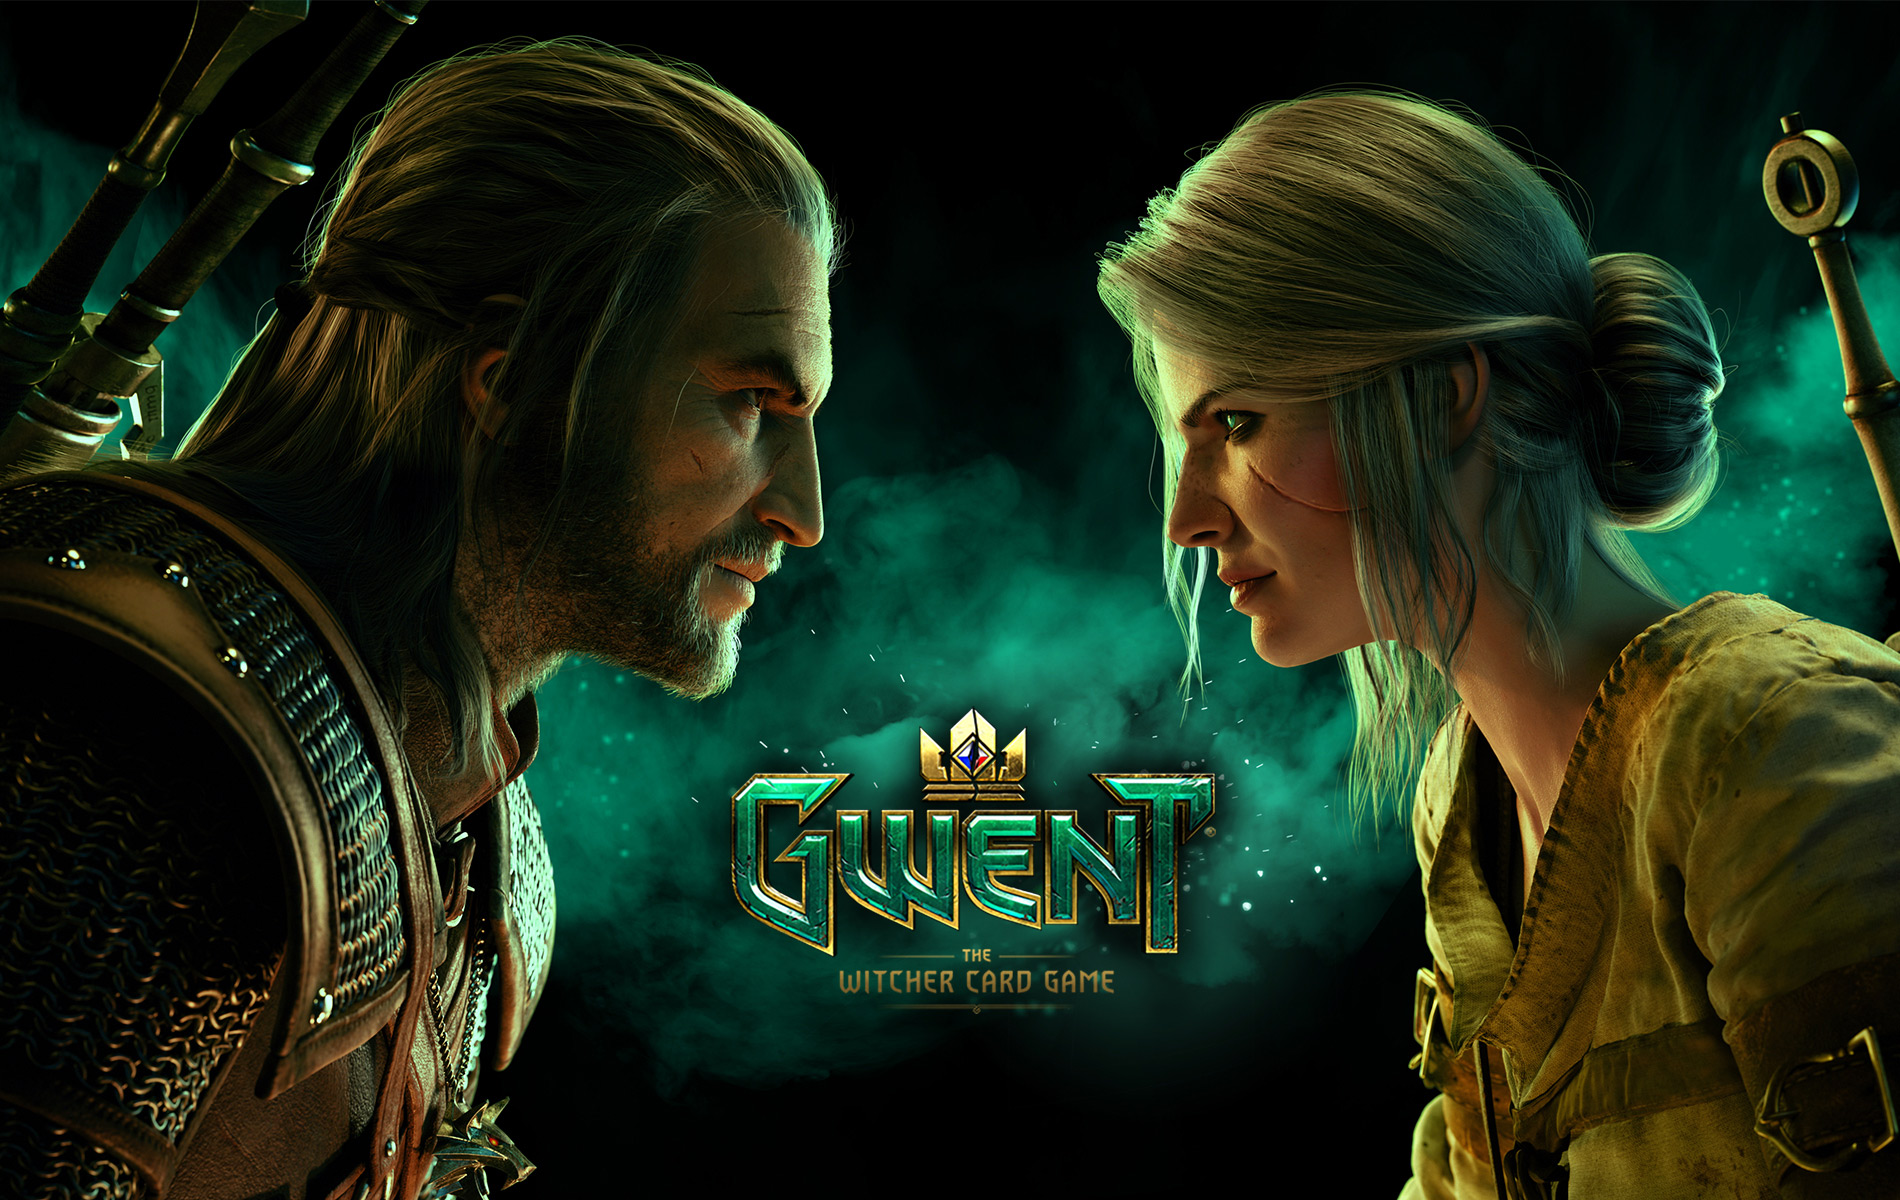 Gwent The Witcher Card Game - 1900x1200 - Download HD Wallpaper -  WallpaperTip